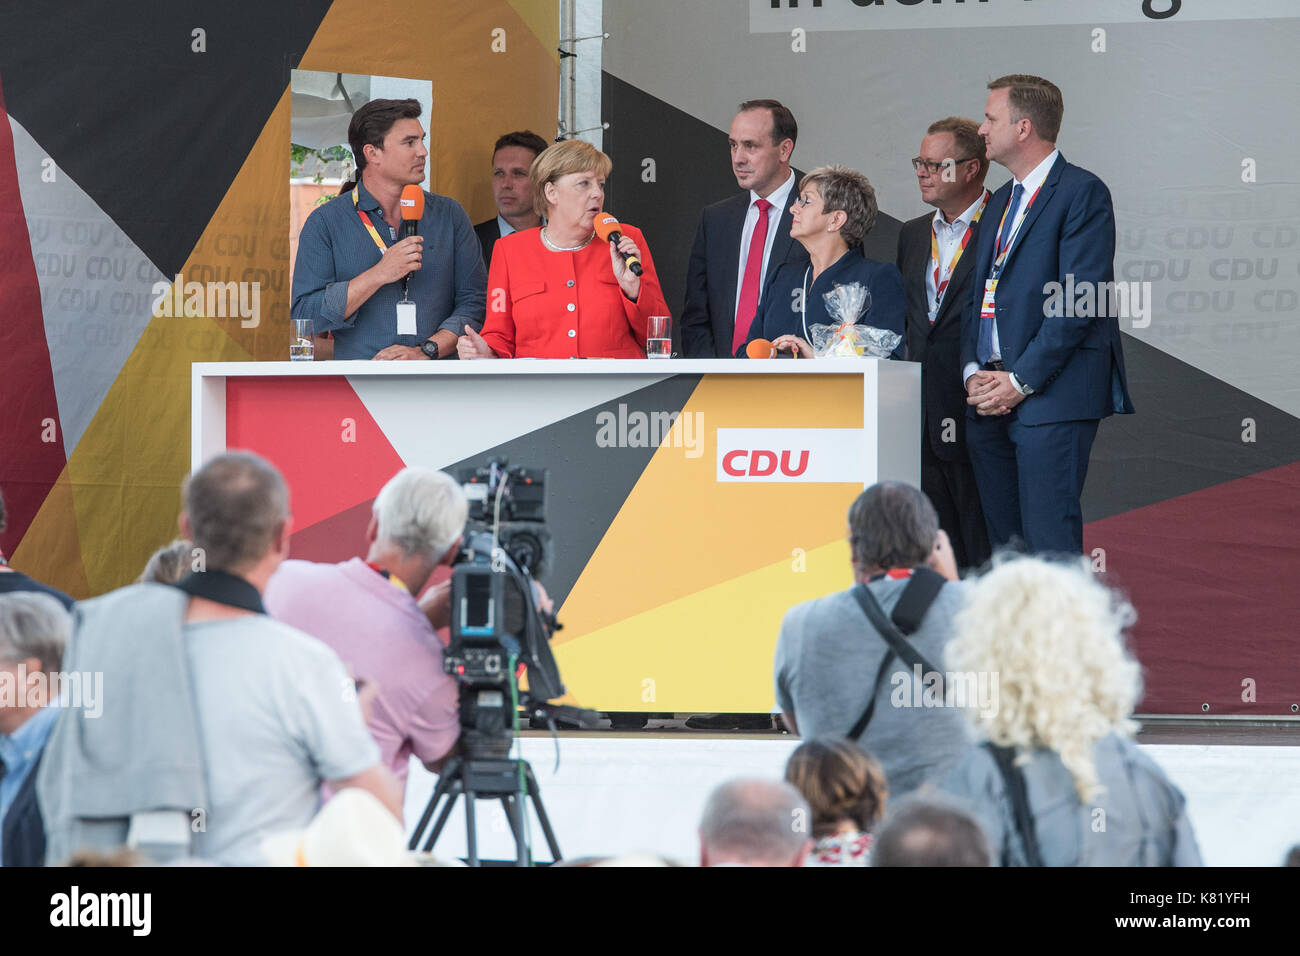 Merkel at an Election event in Brandenburg in Germany in August 2017 - Stock Image